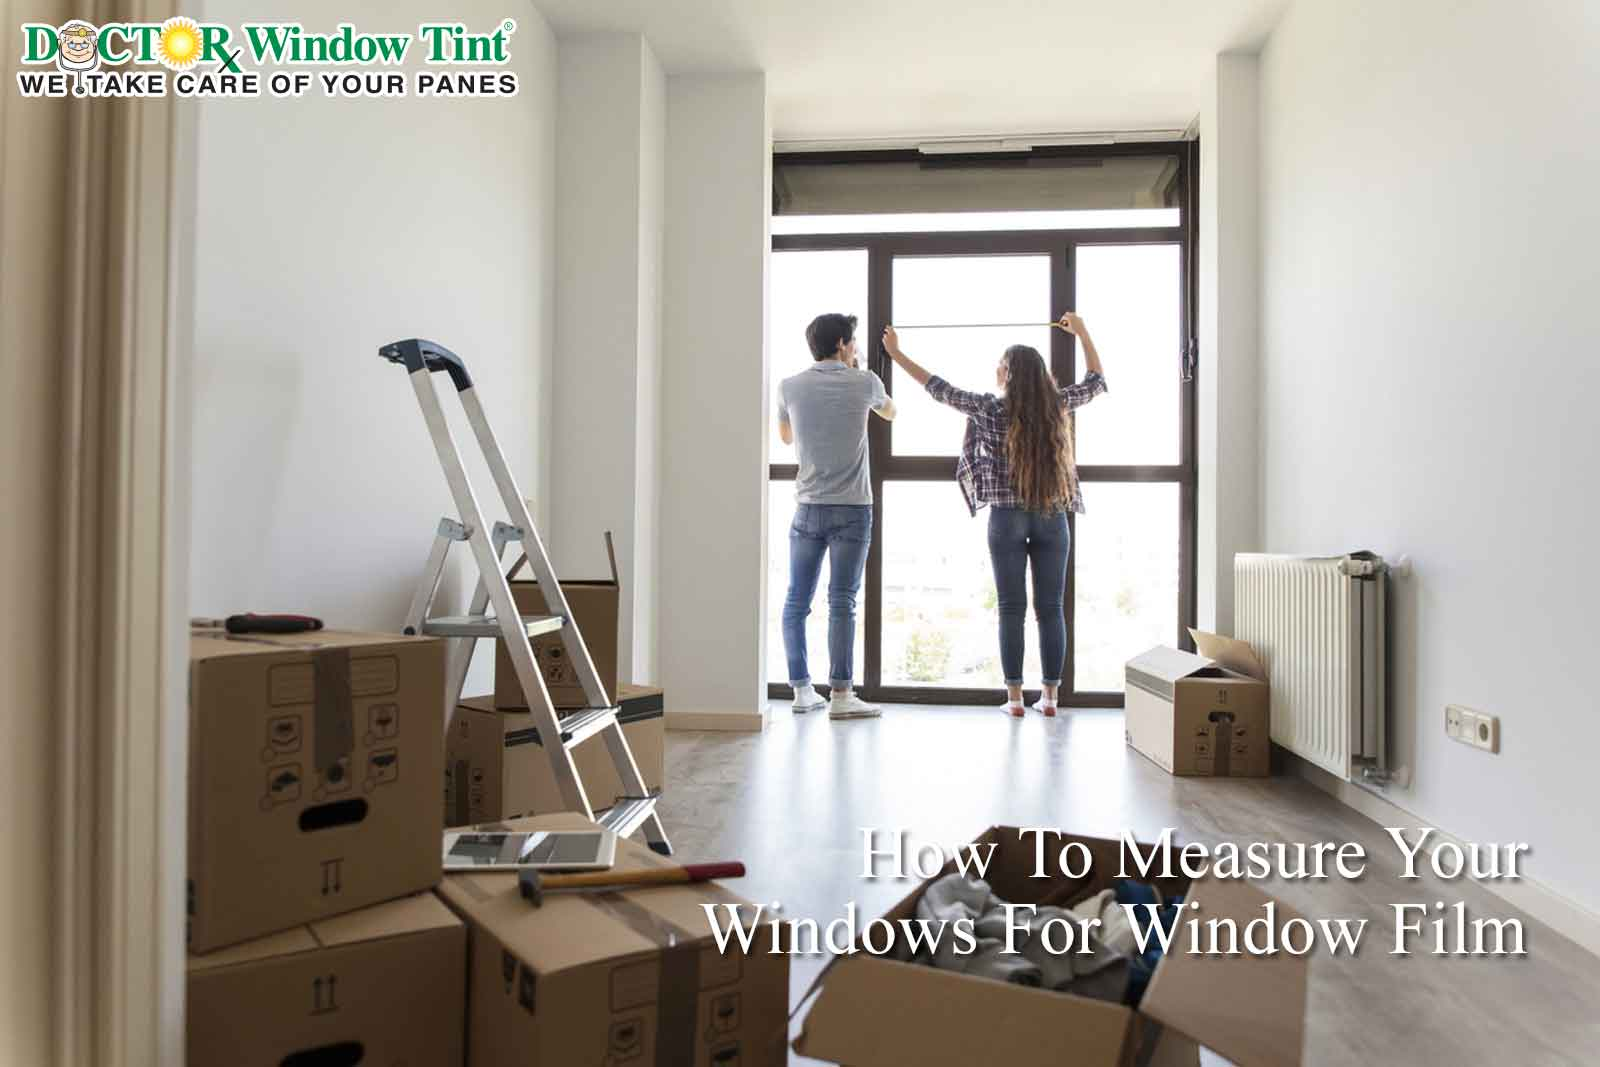 Measure Your Windows For Window Film